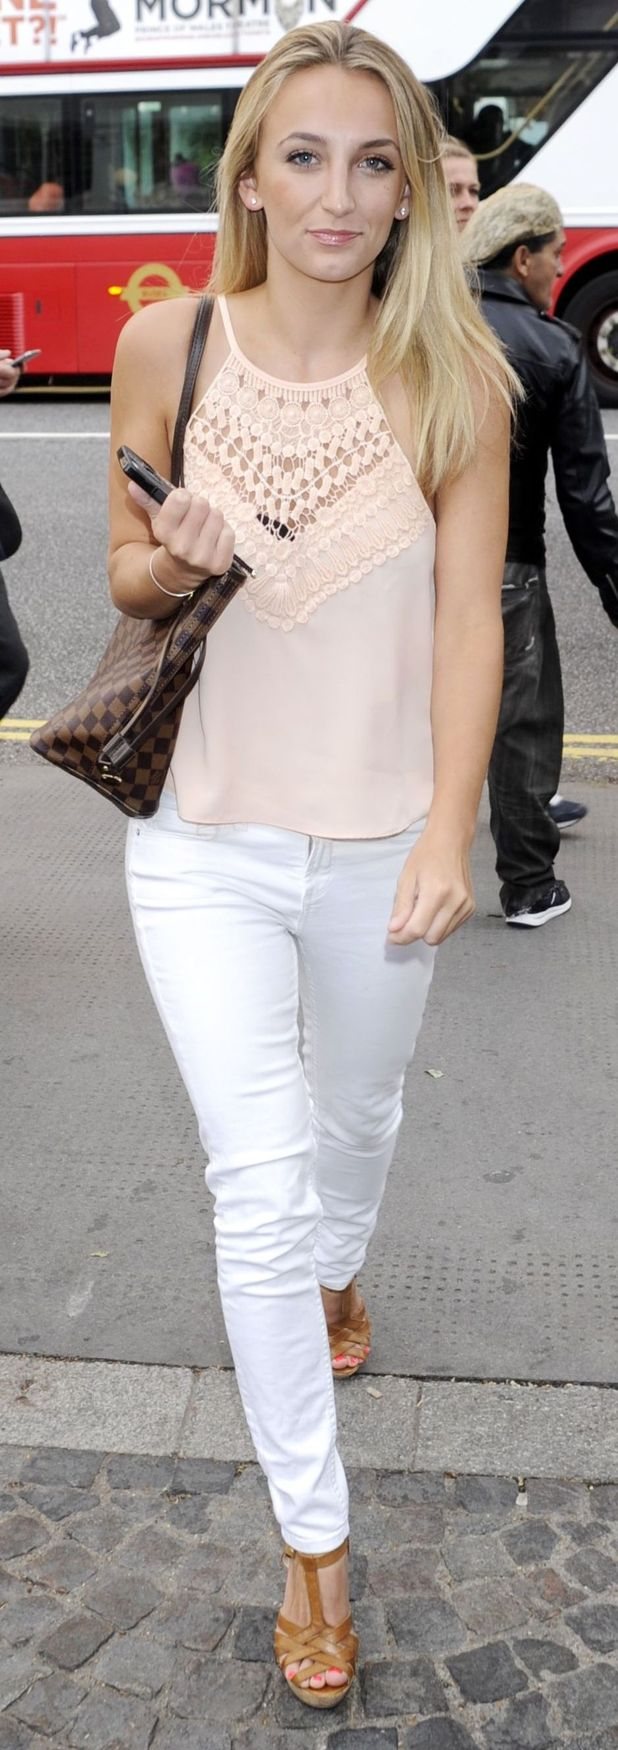 Tiffany Watson out and about in Chelsea, London on her way to the Bluebird restaurant and bar 29th July 2015